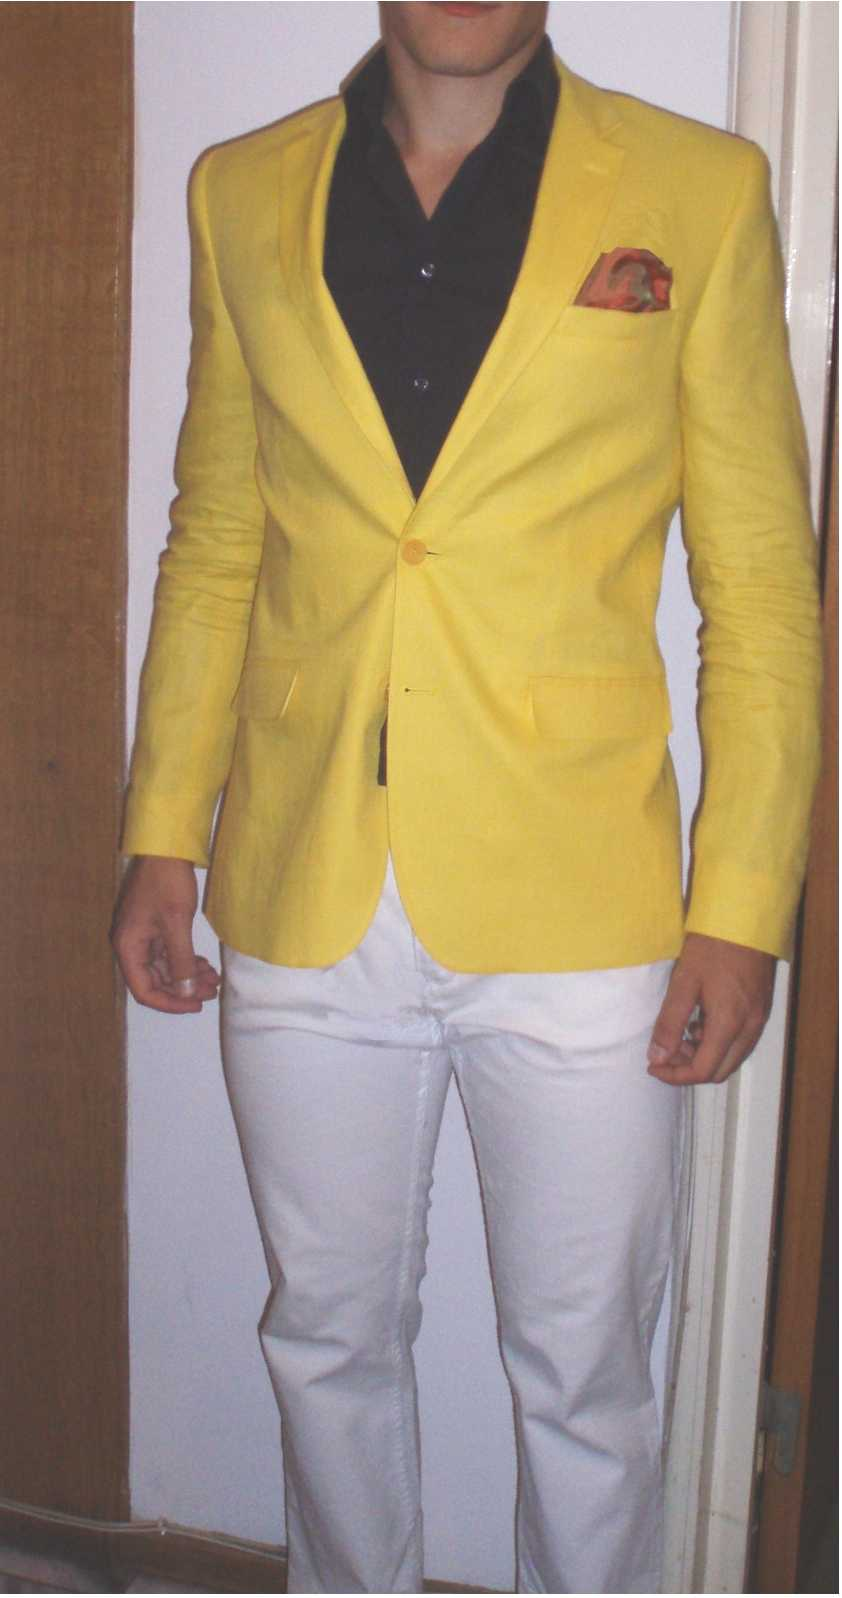 What color shirt and handkerchief would go with a yellow blazer ...